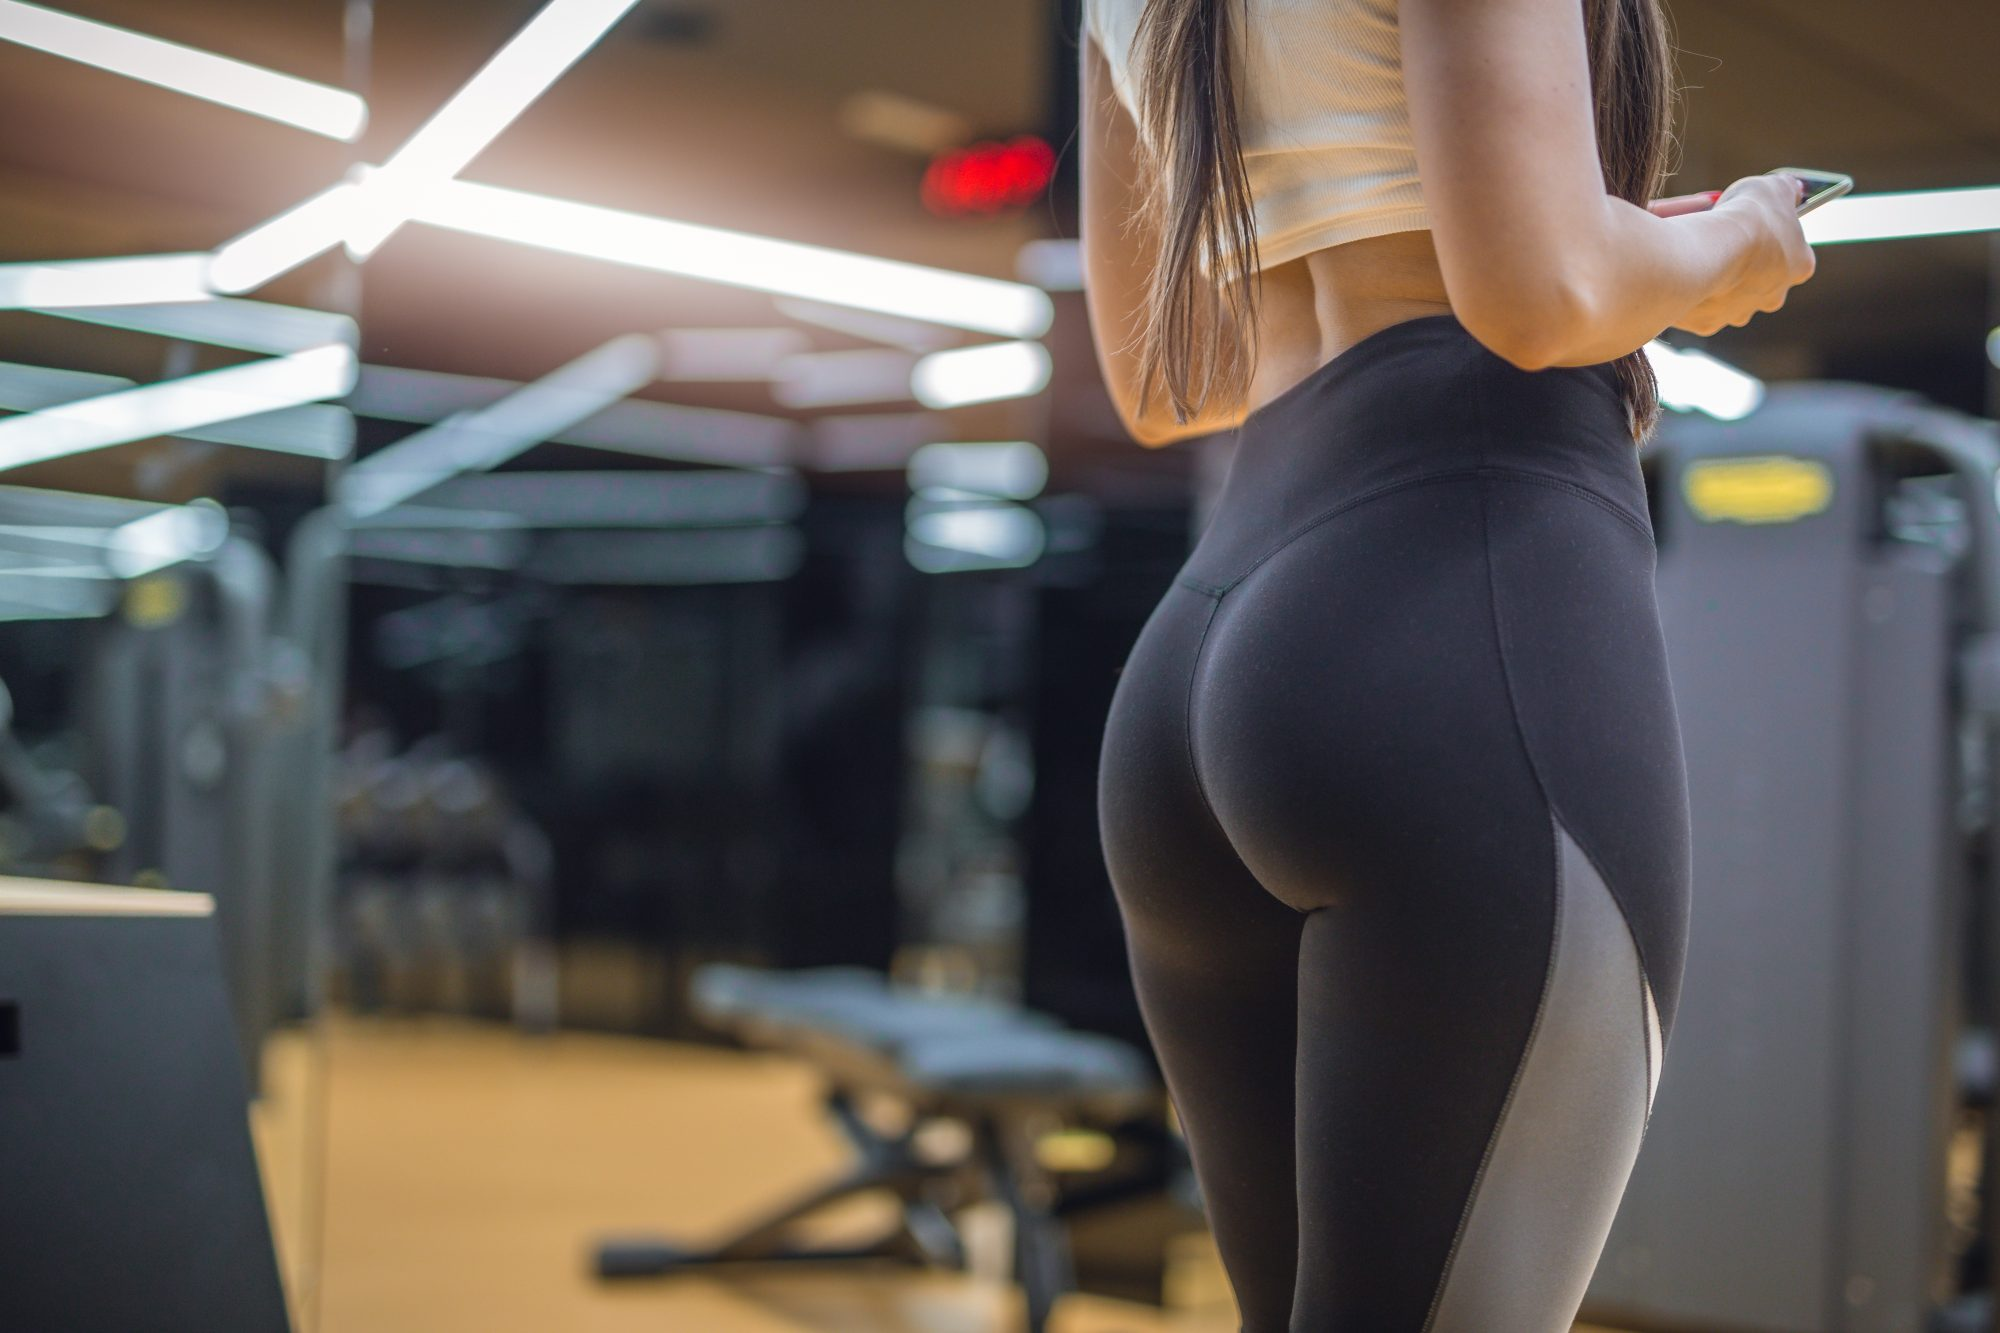 Learn How to Properly Engage Your Glutes During These Key Exercises